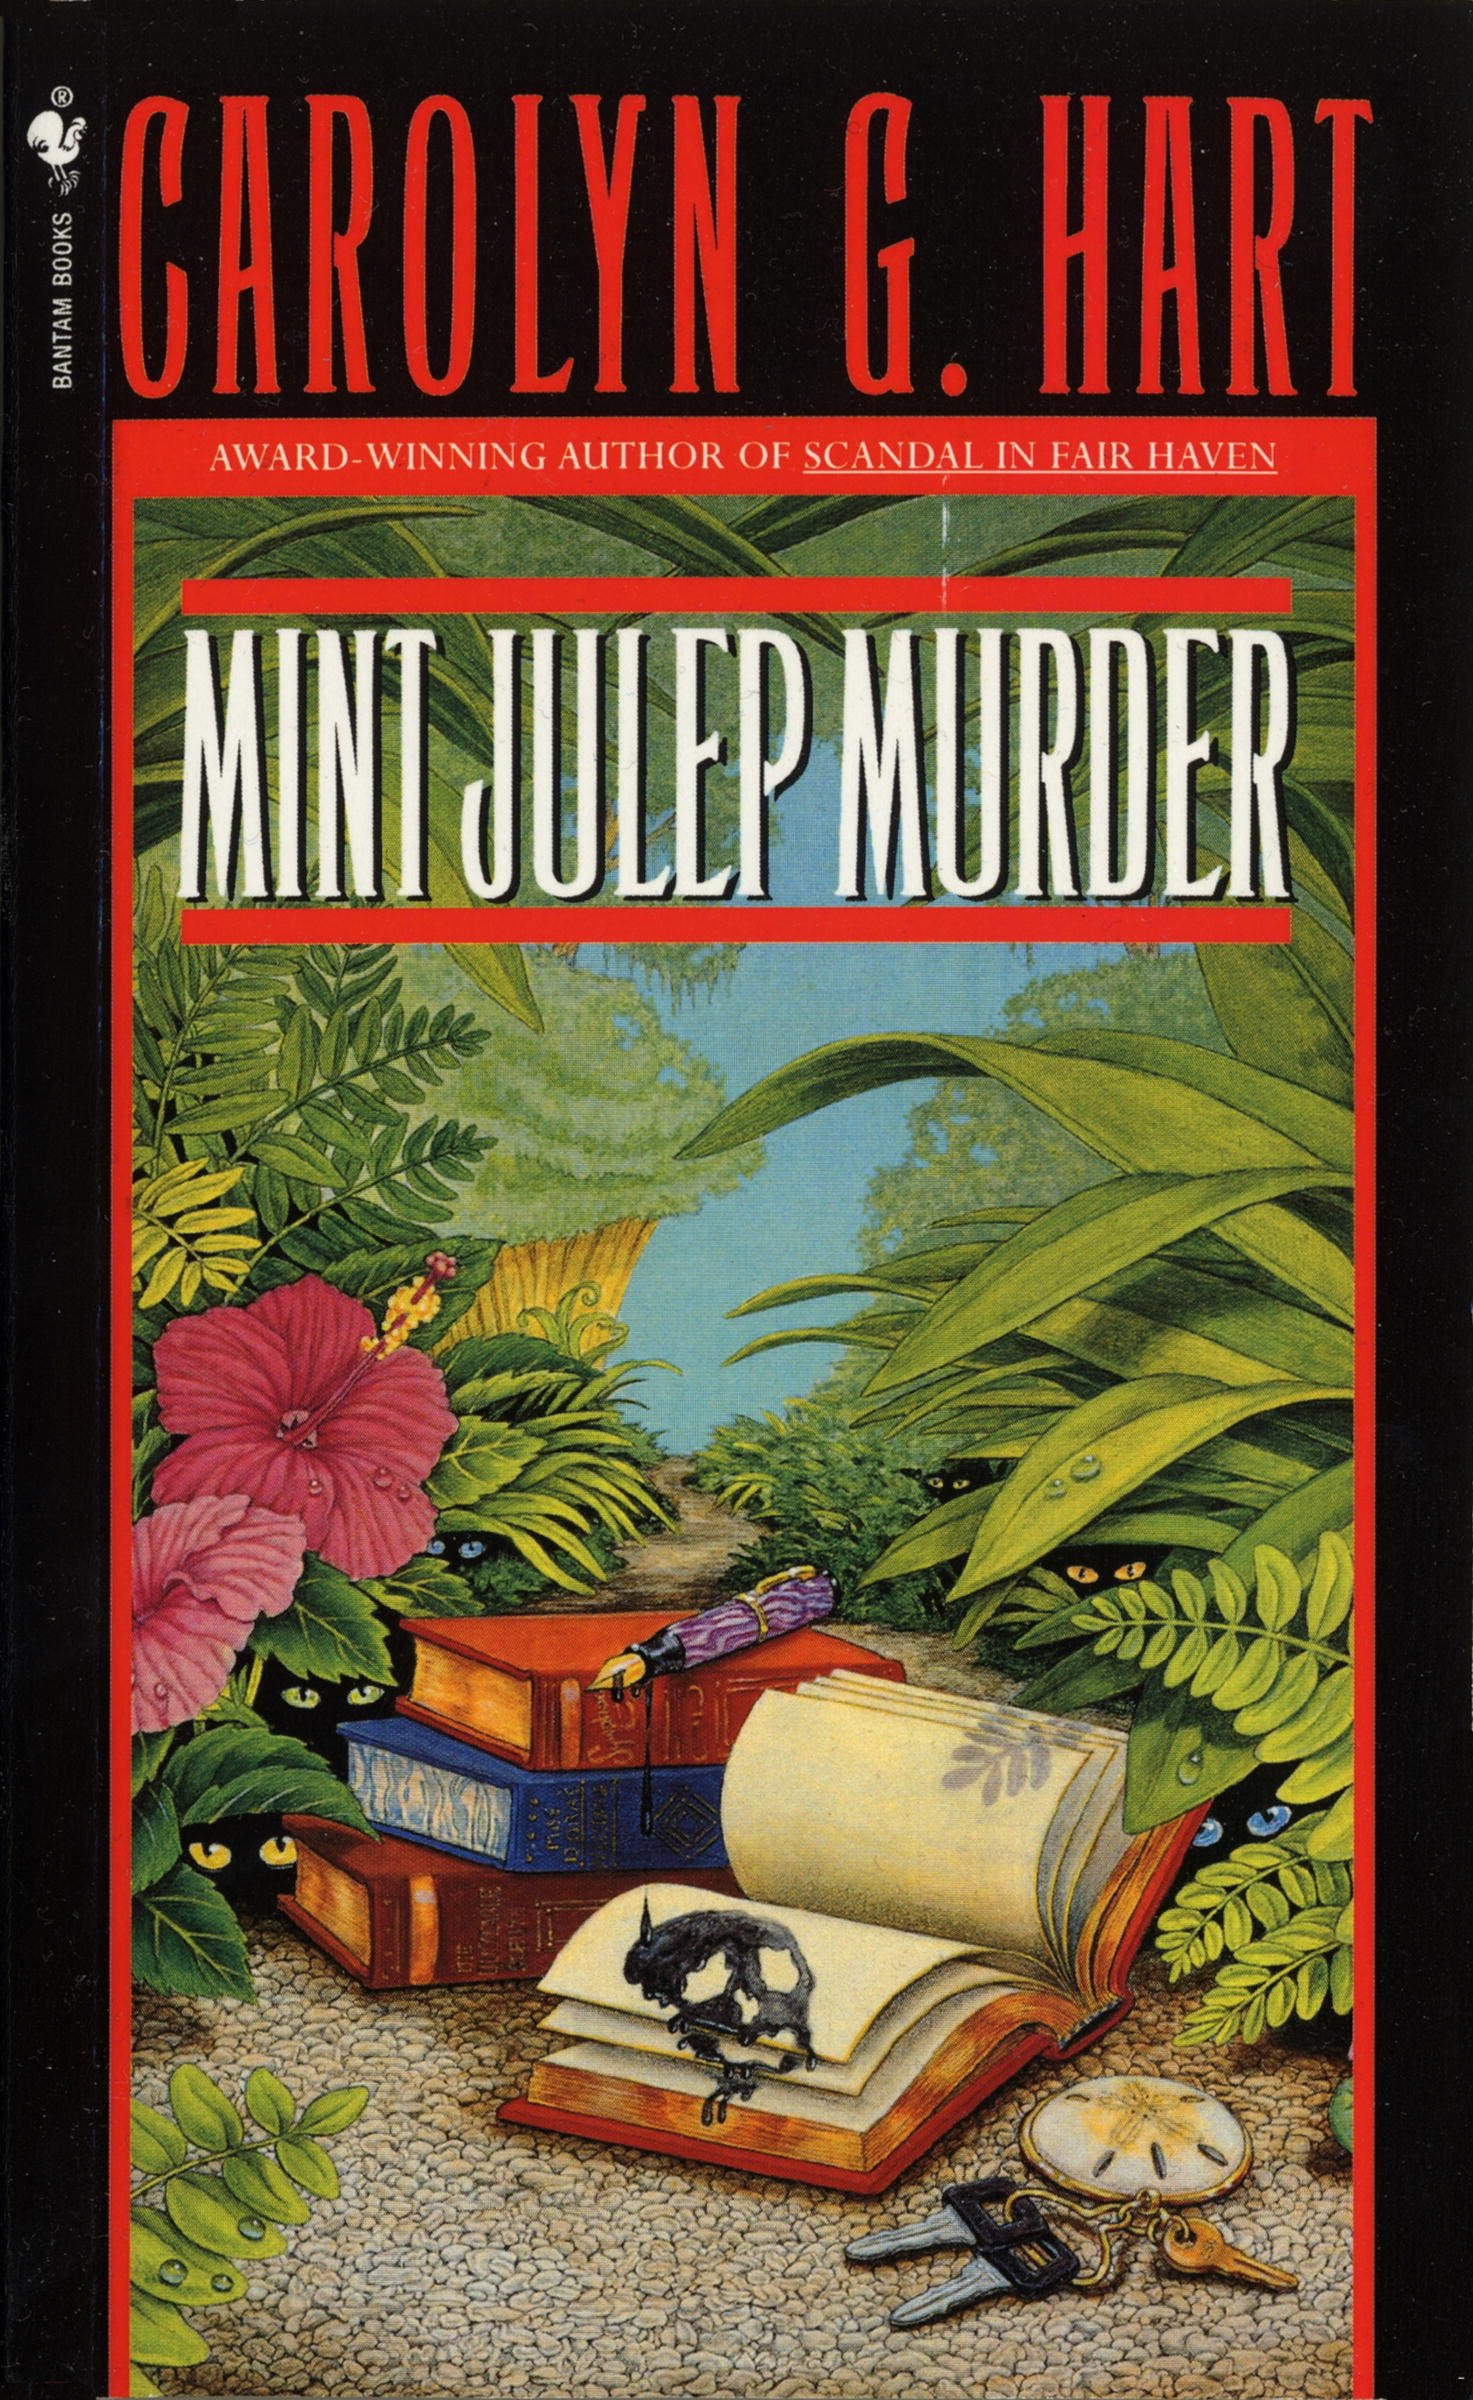 Julep Murder Death Demand Mysteries product image